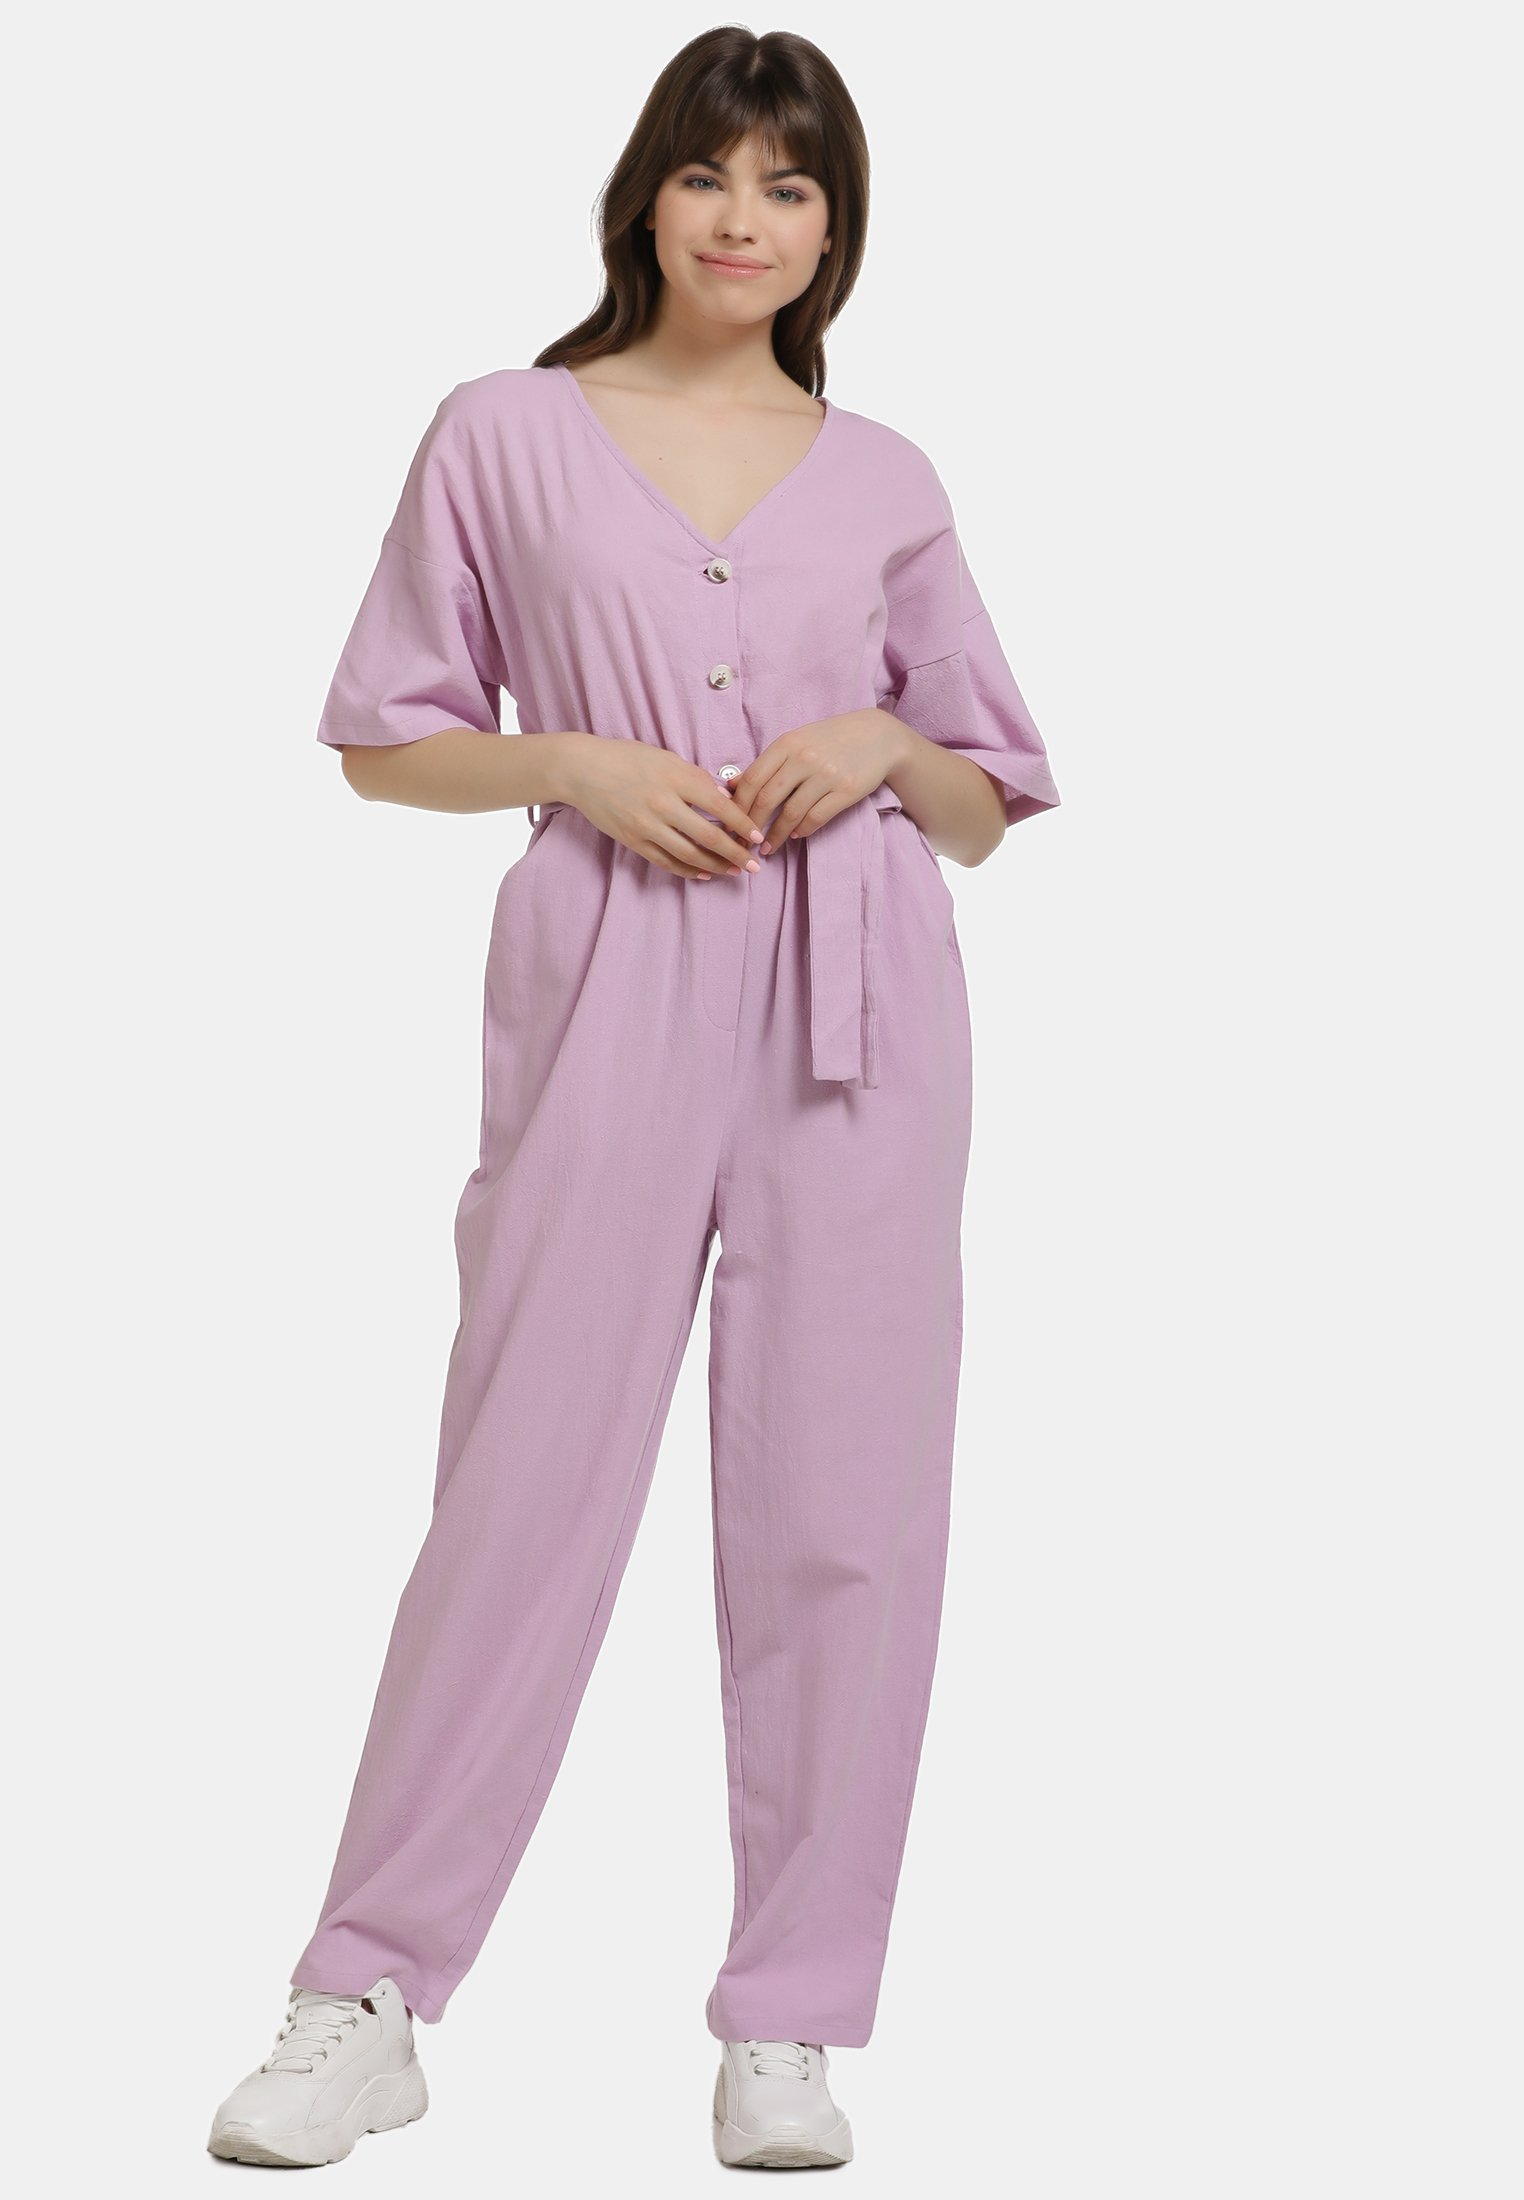 New Women's Clothing myMo JUMPER Jumpsuit lilac eoplxqk3i